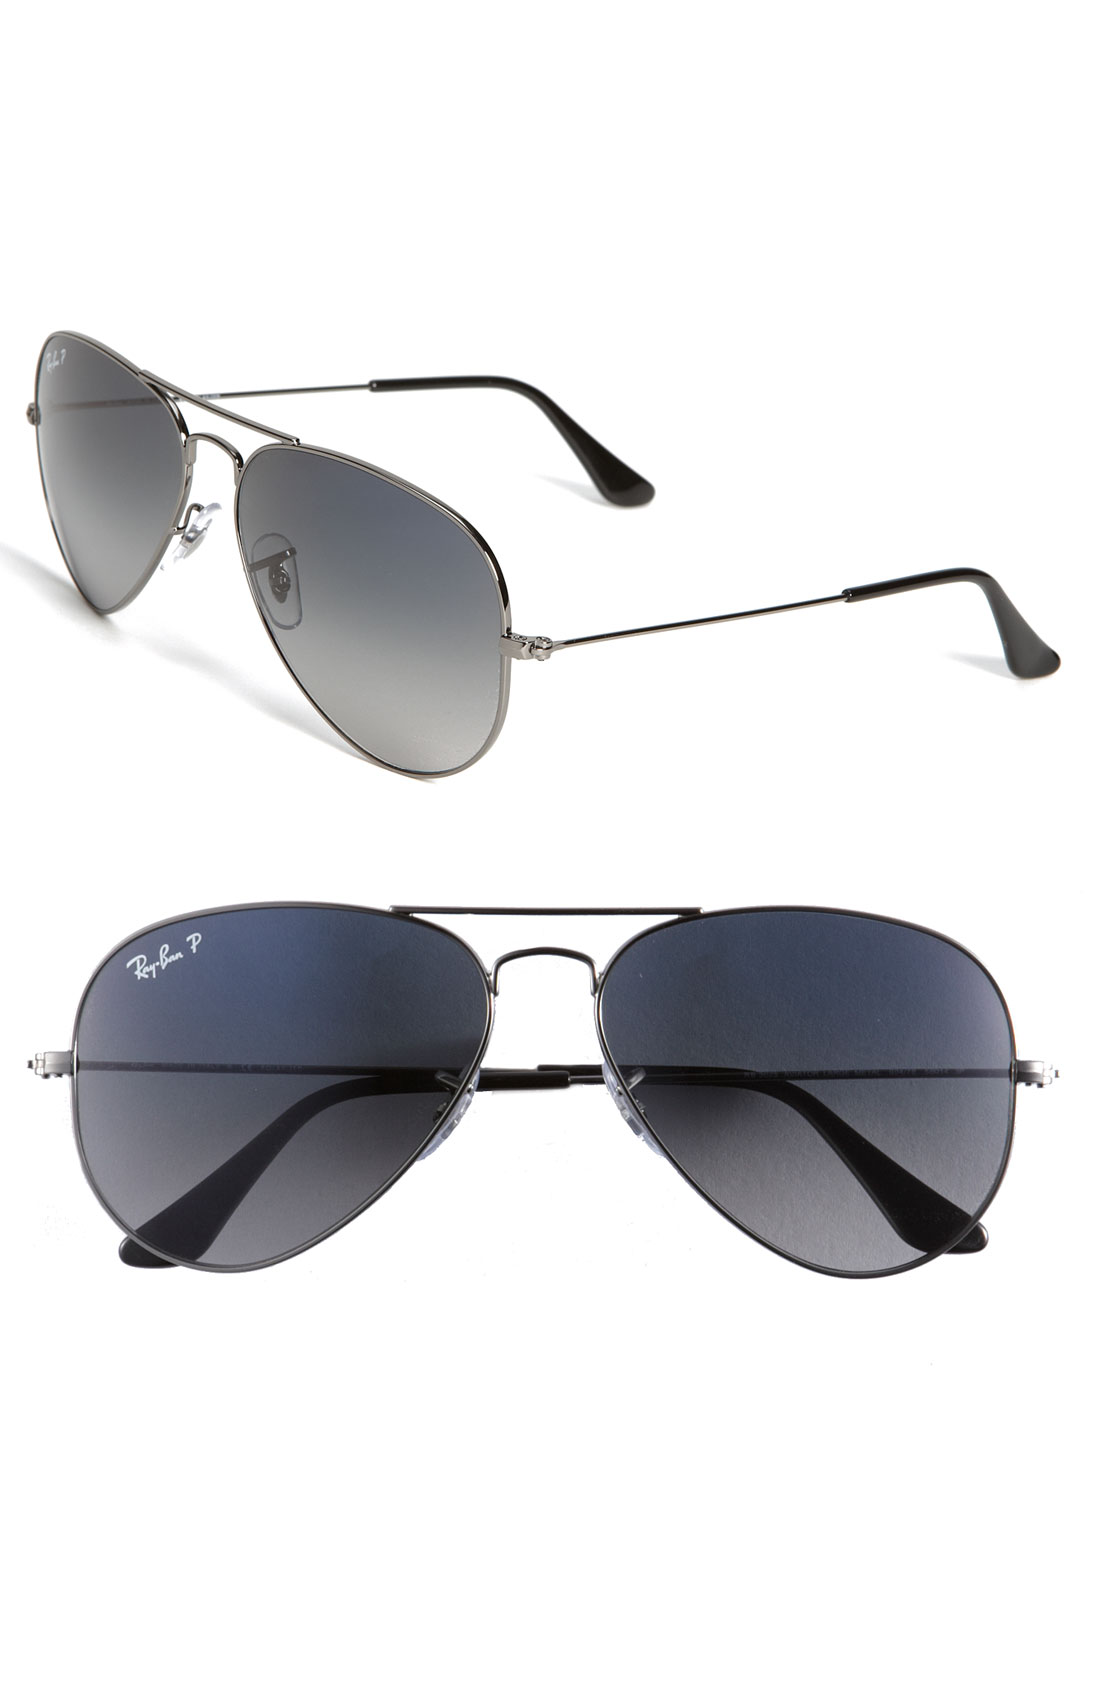 Ray ban polarized aviator sunglasses in gray grey blue for Ray ban aviator miroir homme